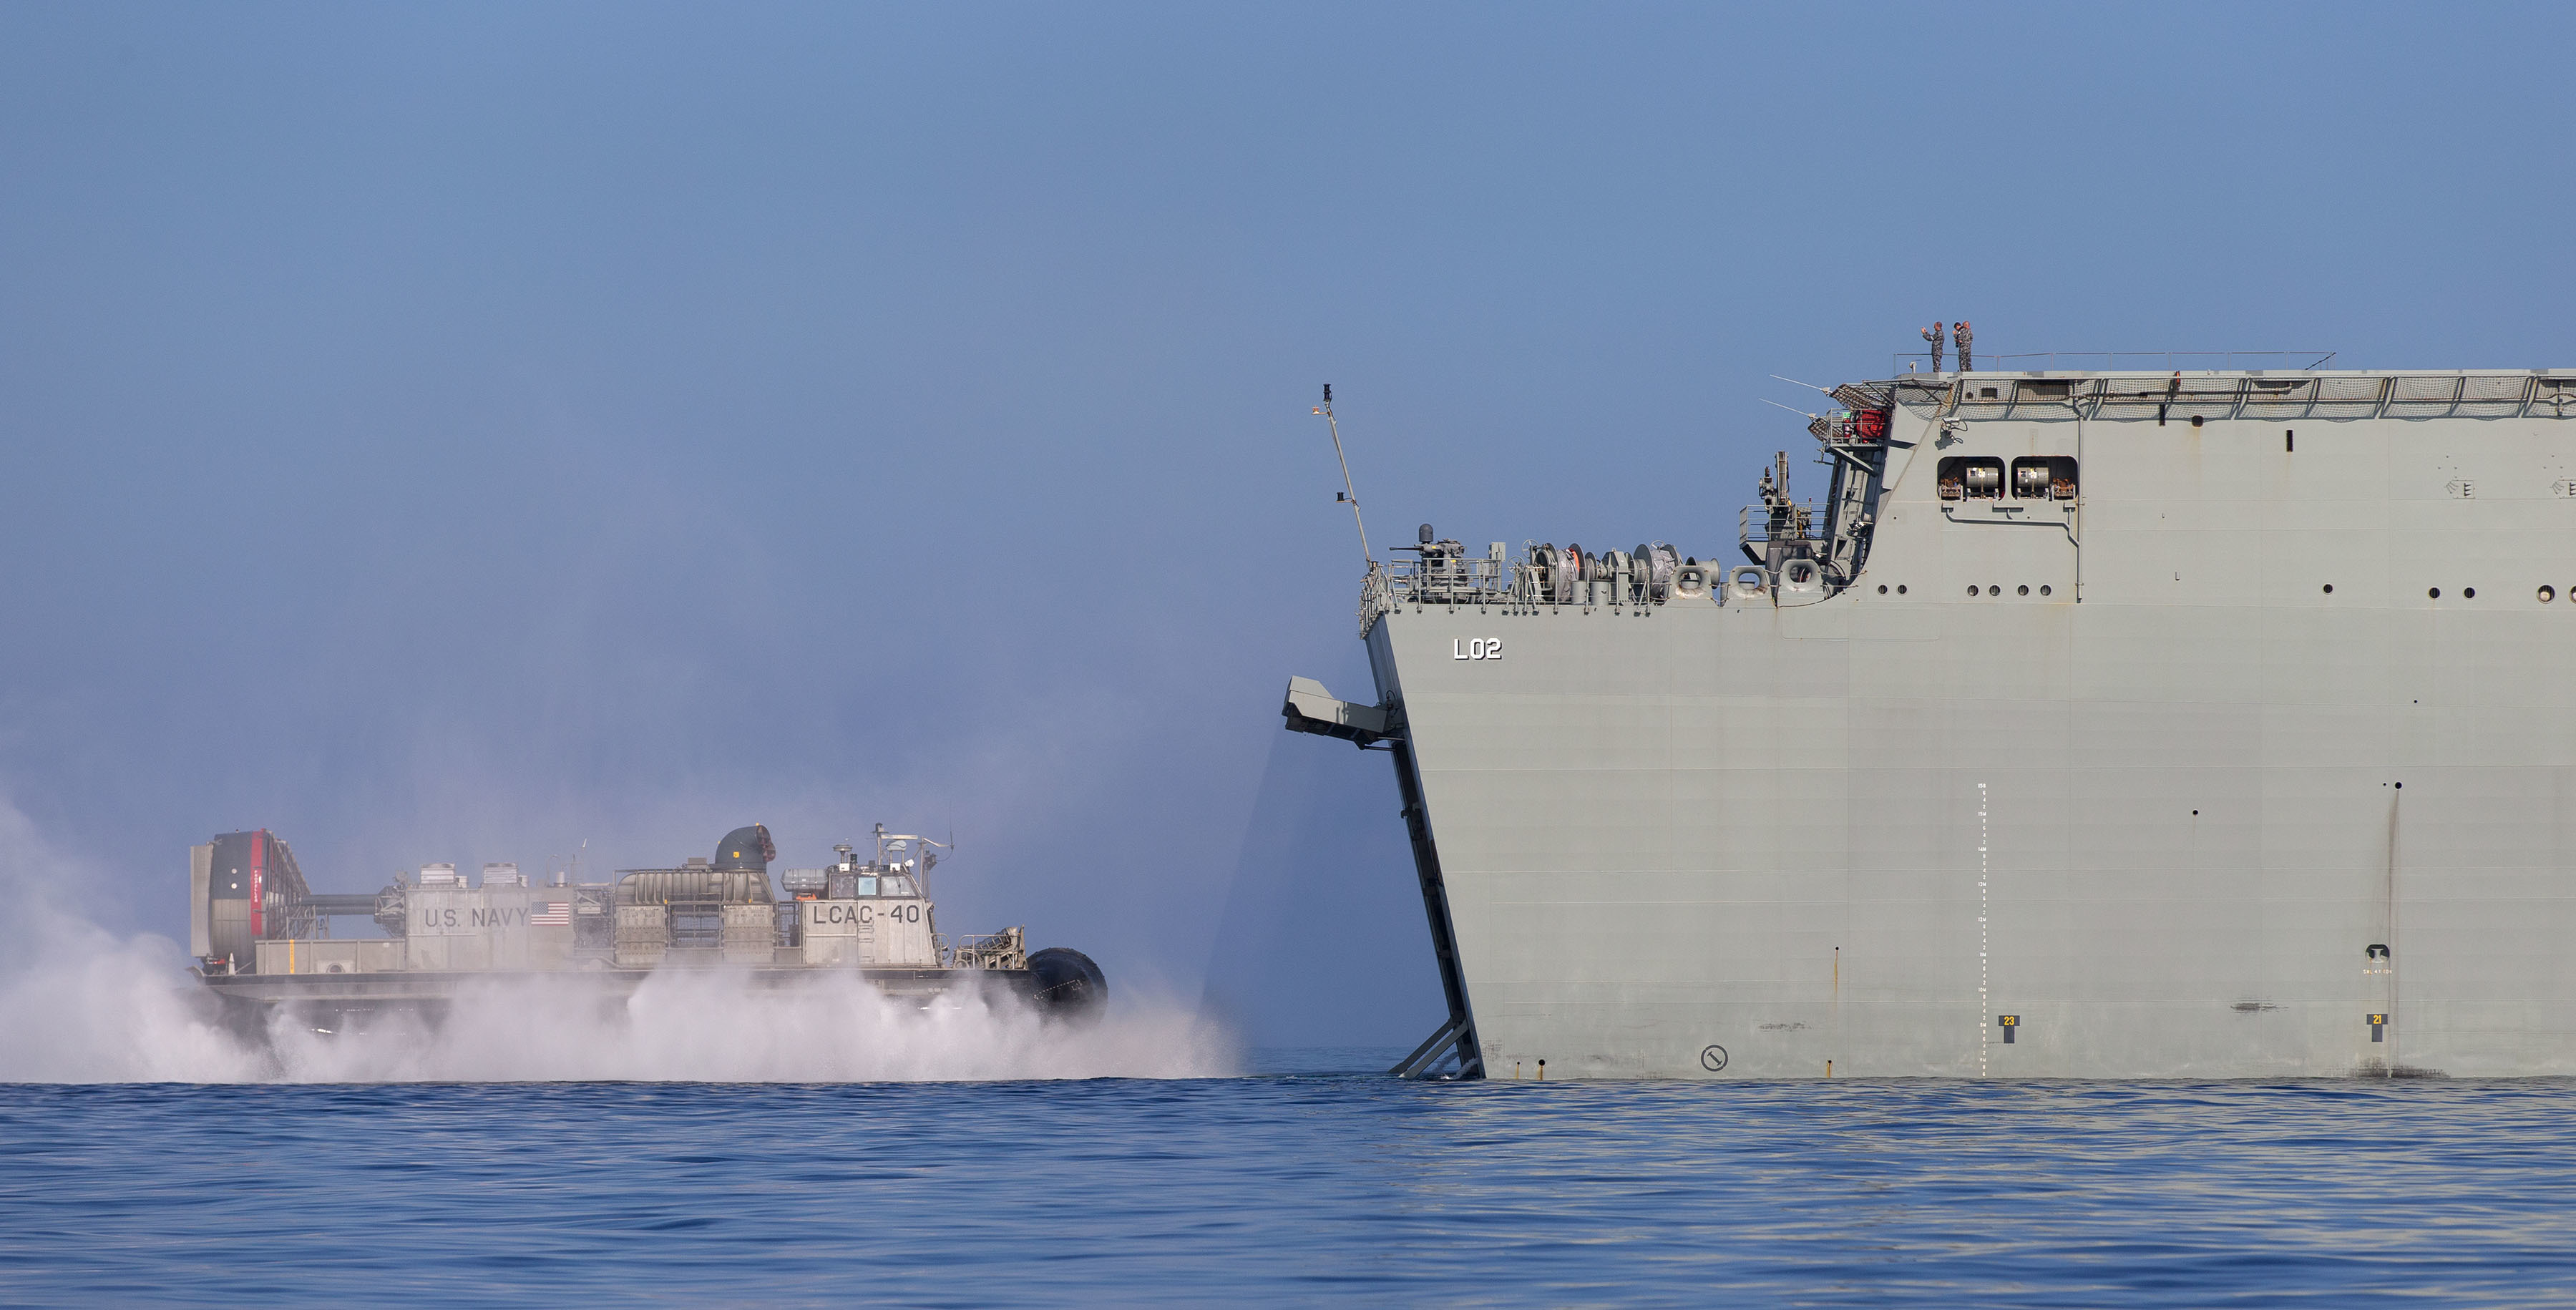 A U.S. Navy Landing Craft, Air Cushion (LCAC) from amphibious transport dock USS San Diego (LPD 22) enters the well dock of HMAS Canberra off the coast of Hawaii during interoperability training in Rim of the Pacific 2016. Royal Australian Navy photo.